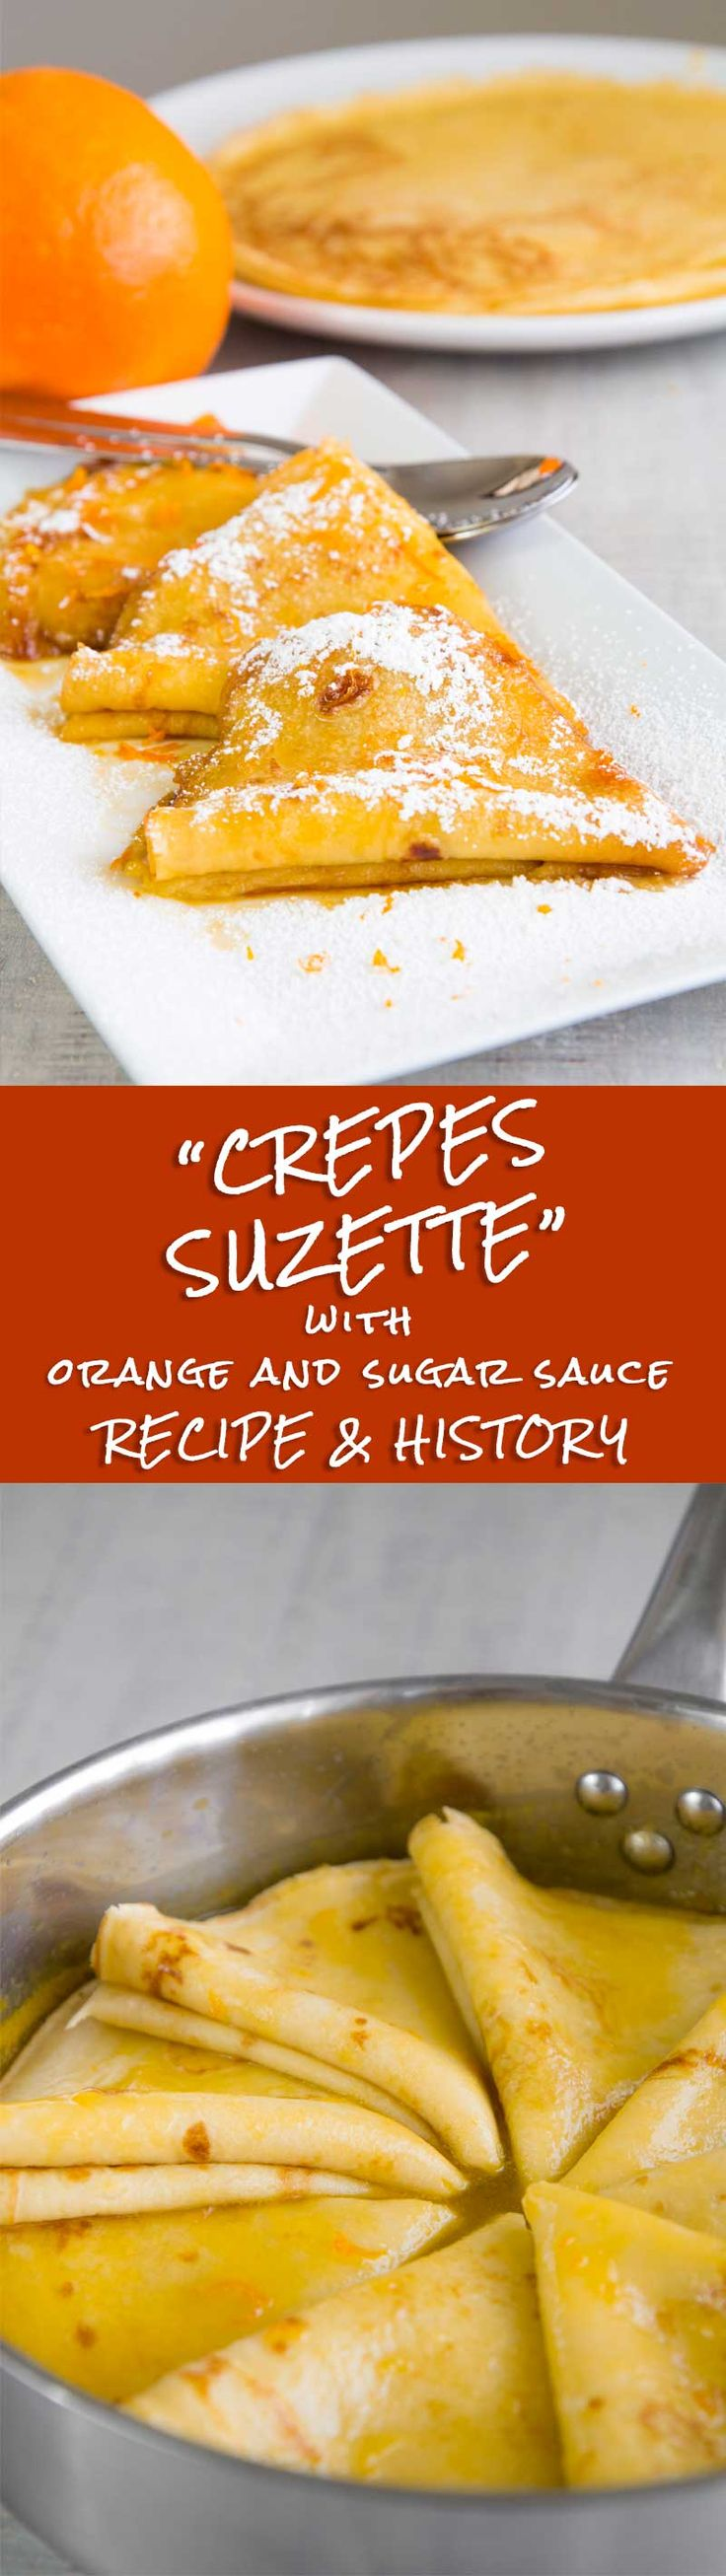 CREPES SUZETTE RECIPE & HISTORY - all you need to know! - The Crepes Suzette is one of the most famous French desserts; but actually it is not French! The origin of this deli is Monegasque and in all likelihood result of a mistake: a delicious mistake! Here the recipe and history of Crepe Suzette. - TAGS: dessert France cake family traditional recipe vegetarian sweet